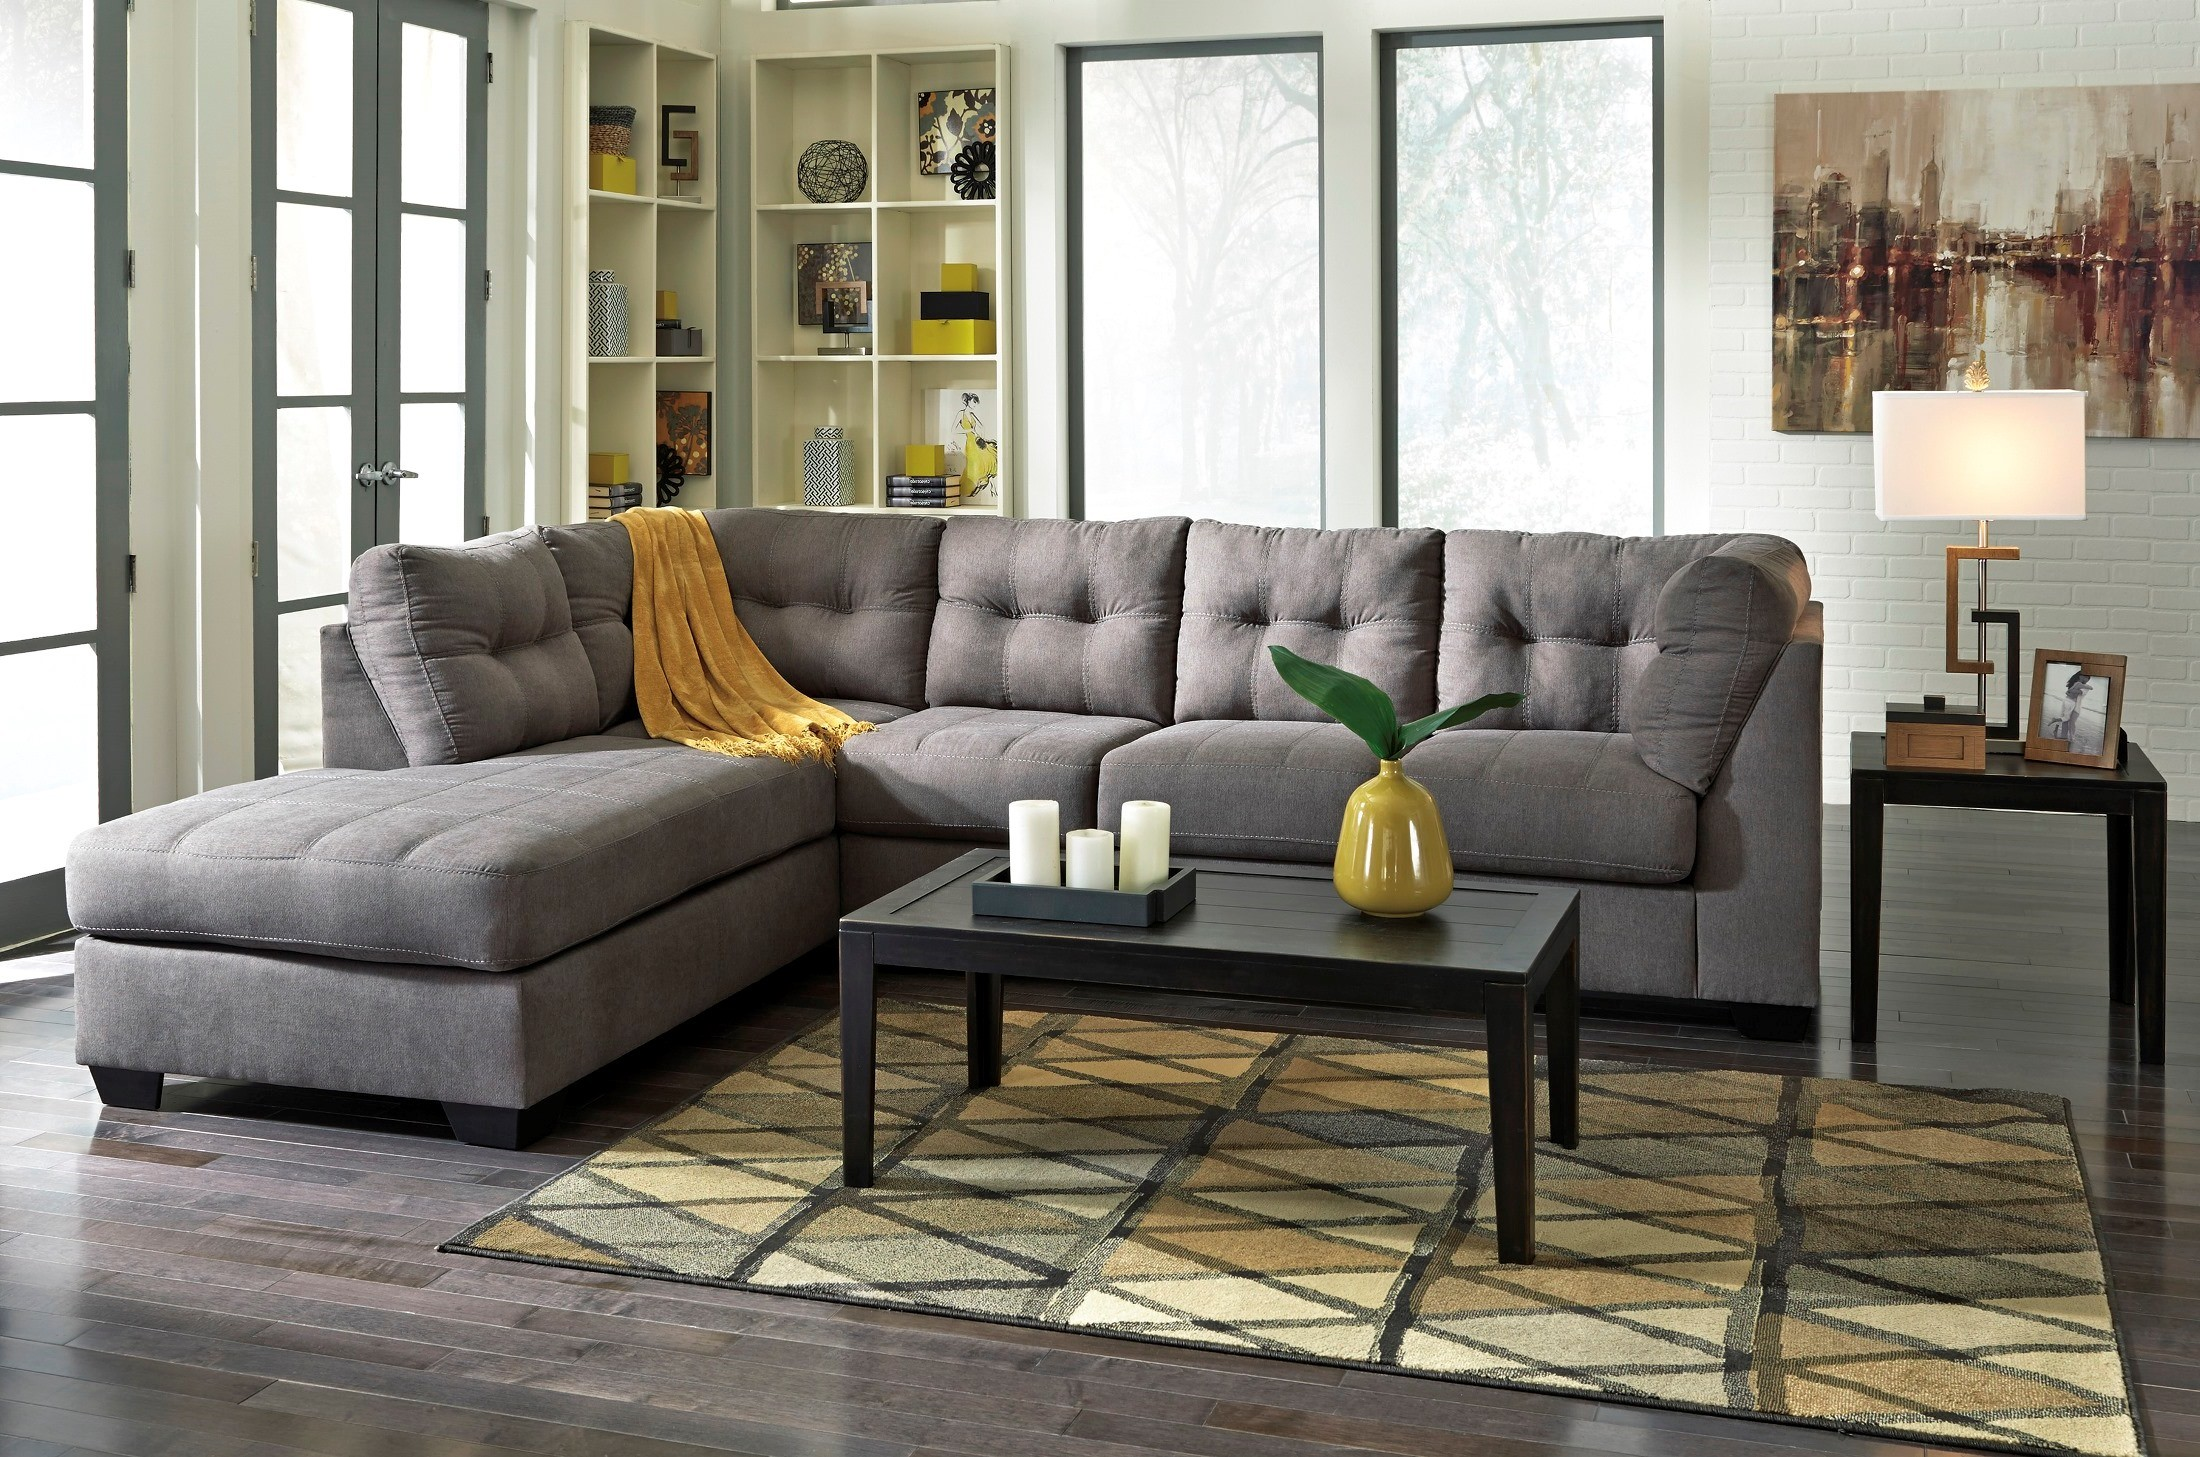 Maier Charcoal Laf Sectional From Ashley 45200 16 67 Coleman